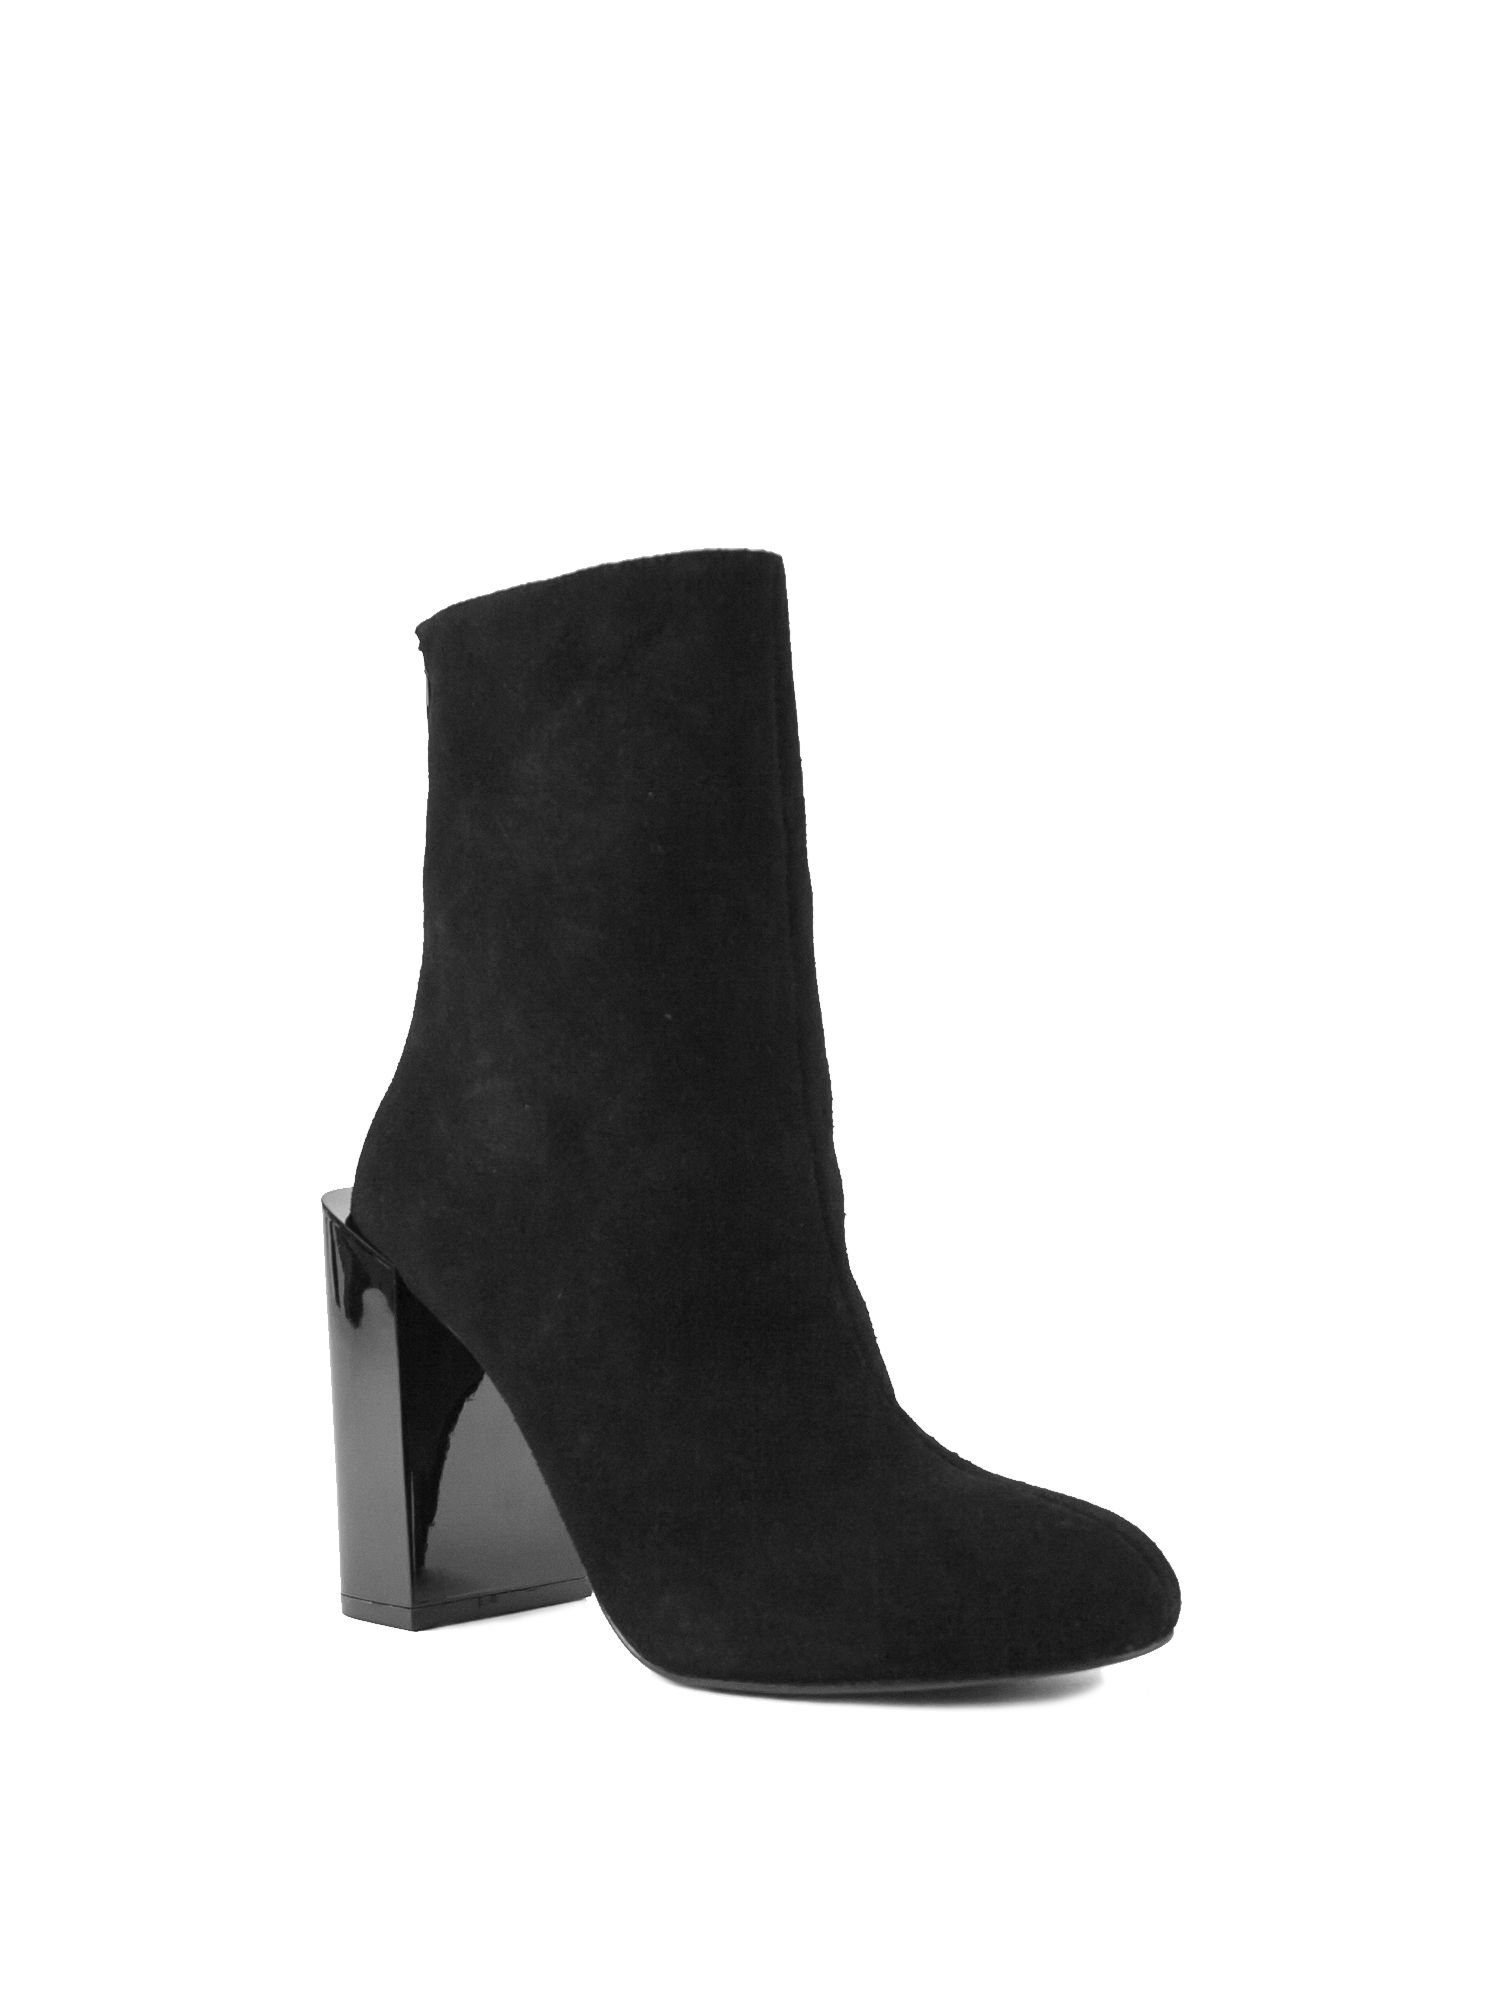 Shellys London Shellys London Lincoln feature ankle boots, Black